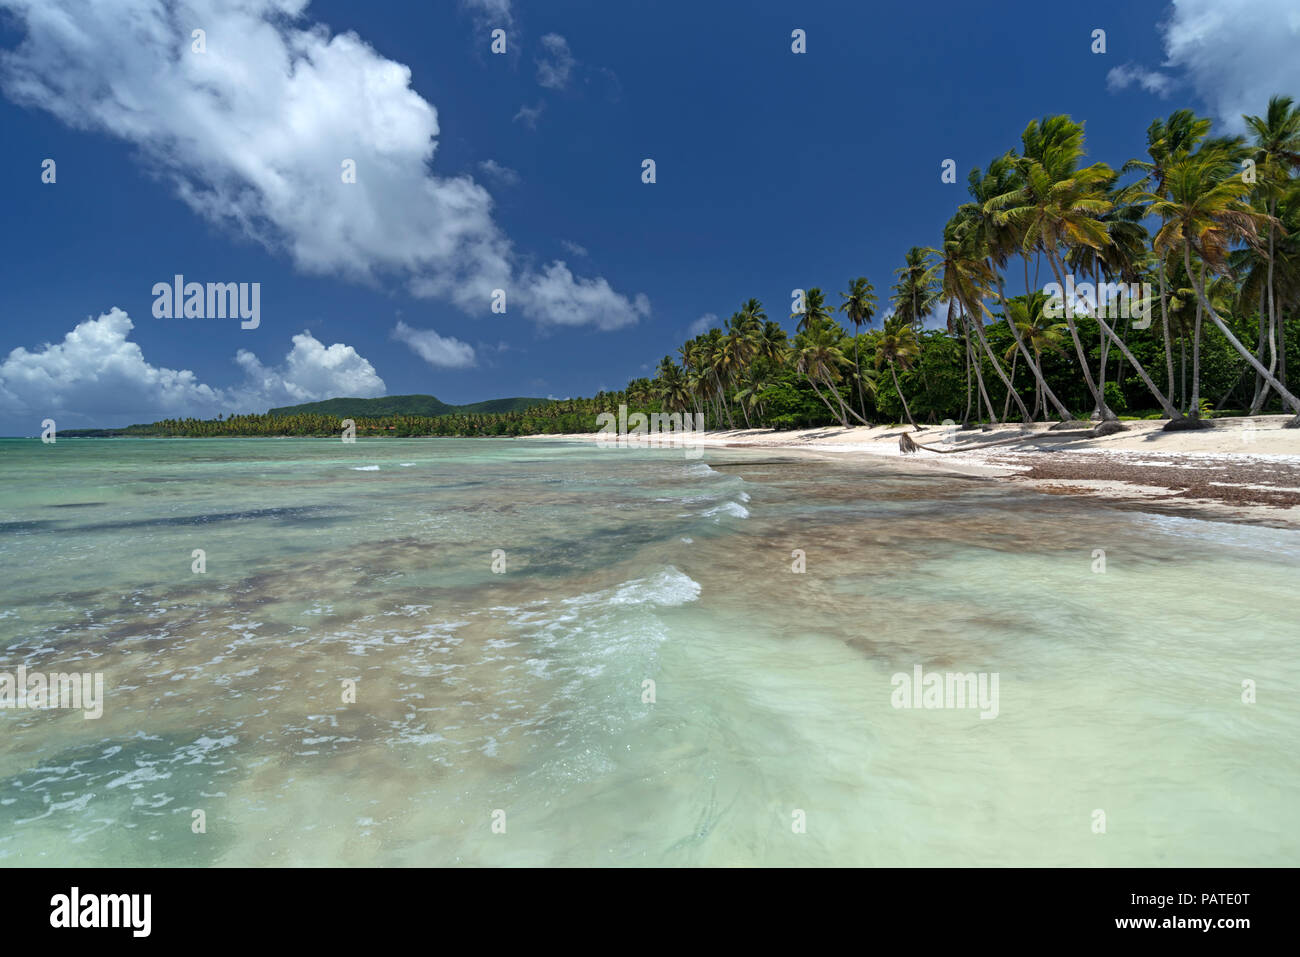 Tropical Caribbean beach in the Dominican Republic - Stock Image